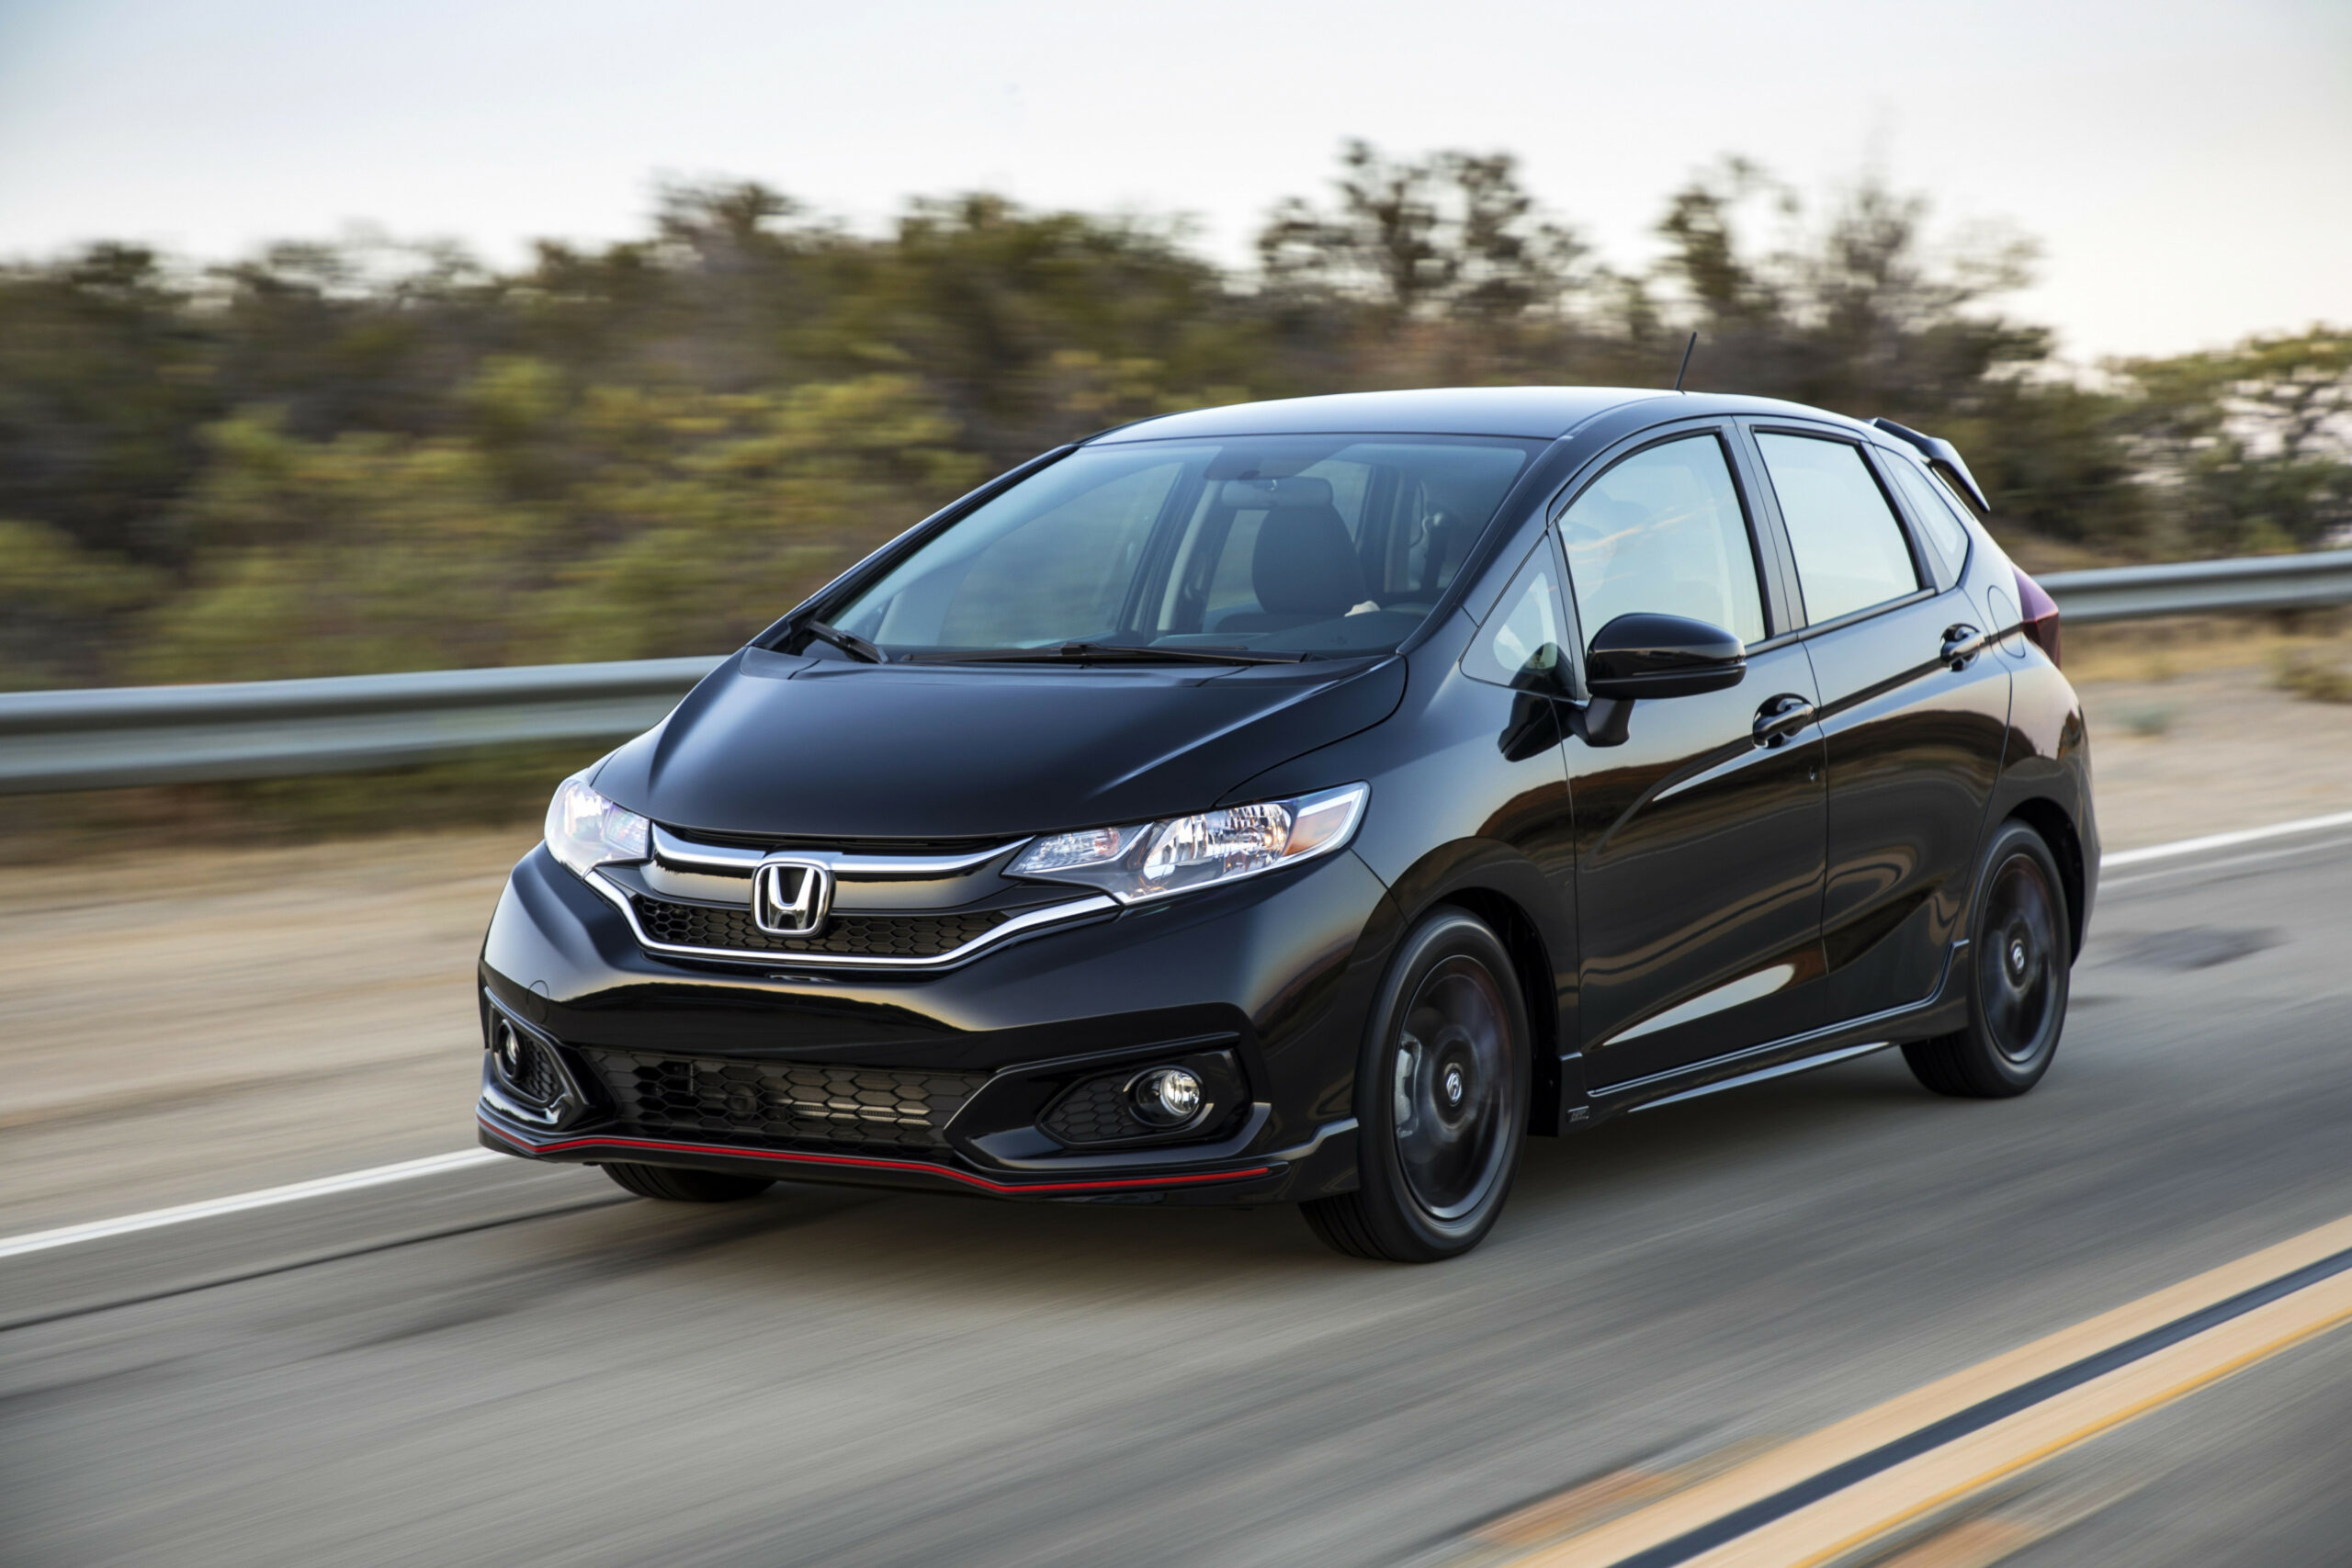 9 Honda Fit Review, Pricing, and Specs - 2020 honda fit ex-l